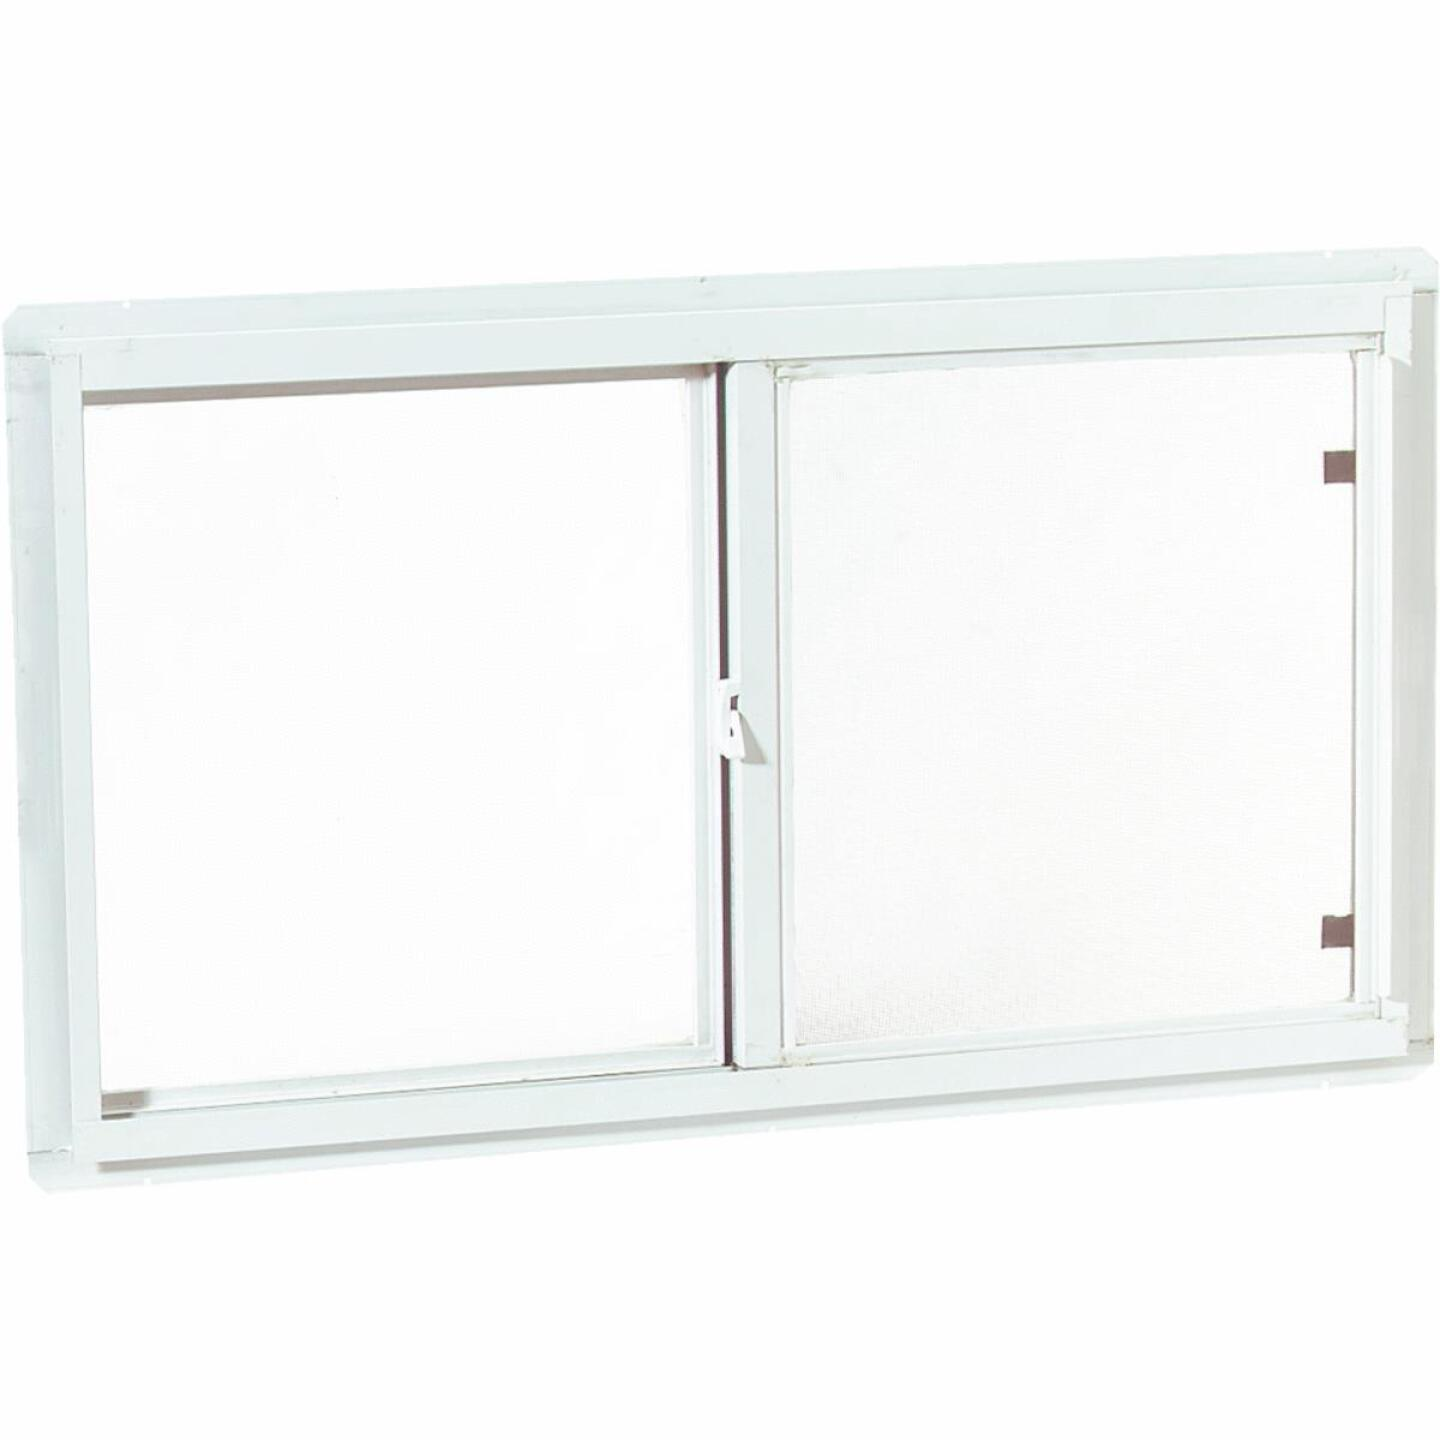 Croft 46 In. W. x 22 In. H. White Insulated Vinyl Horizontal Sliding Window Image 1